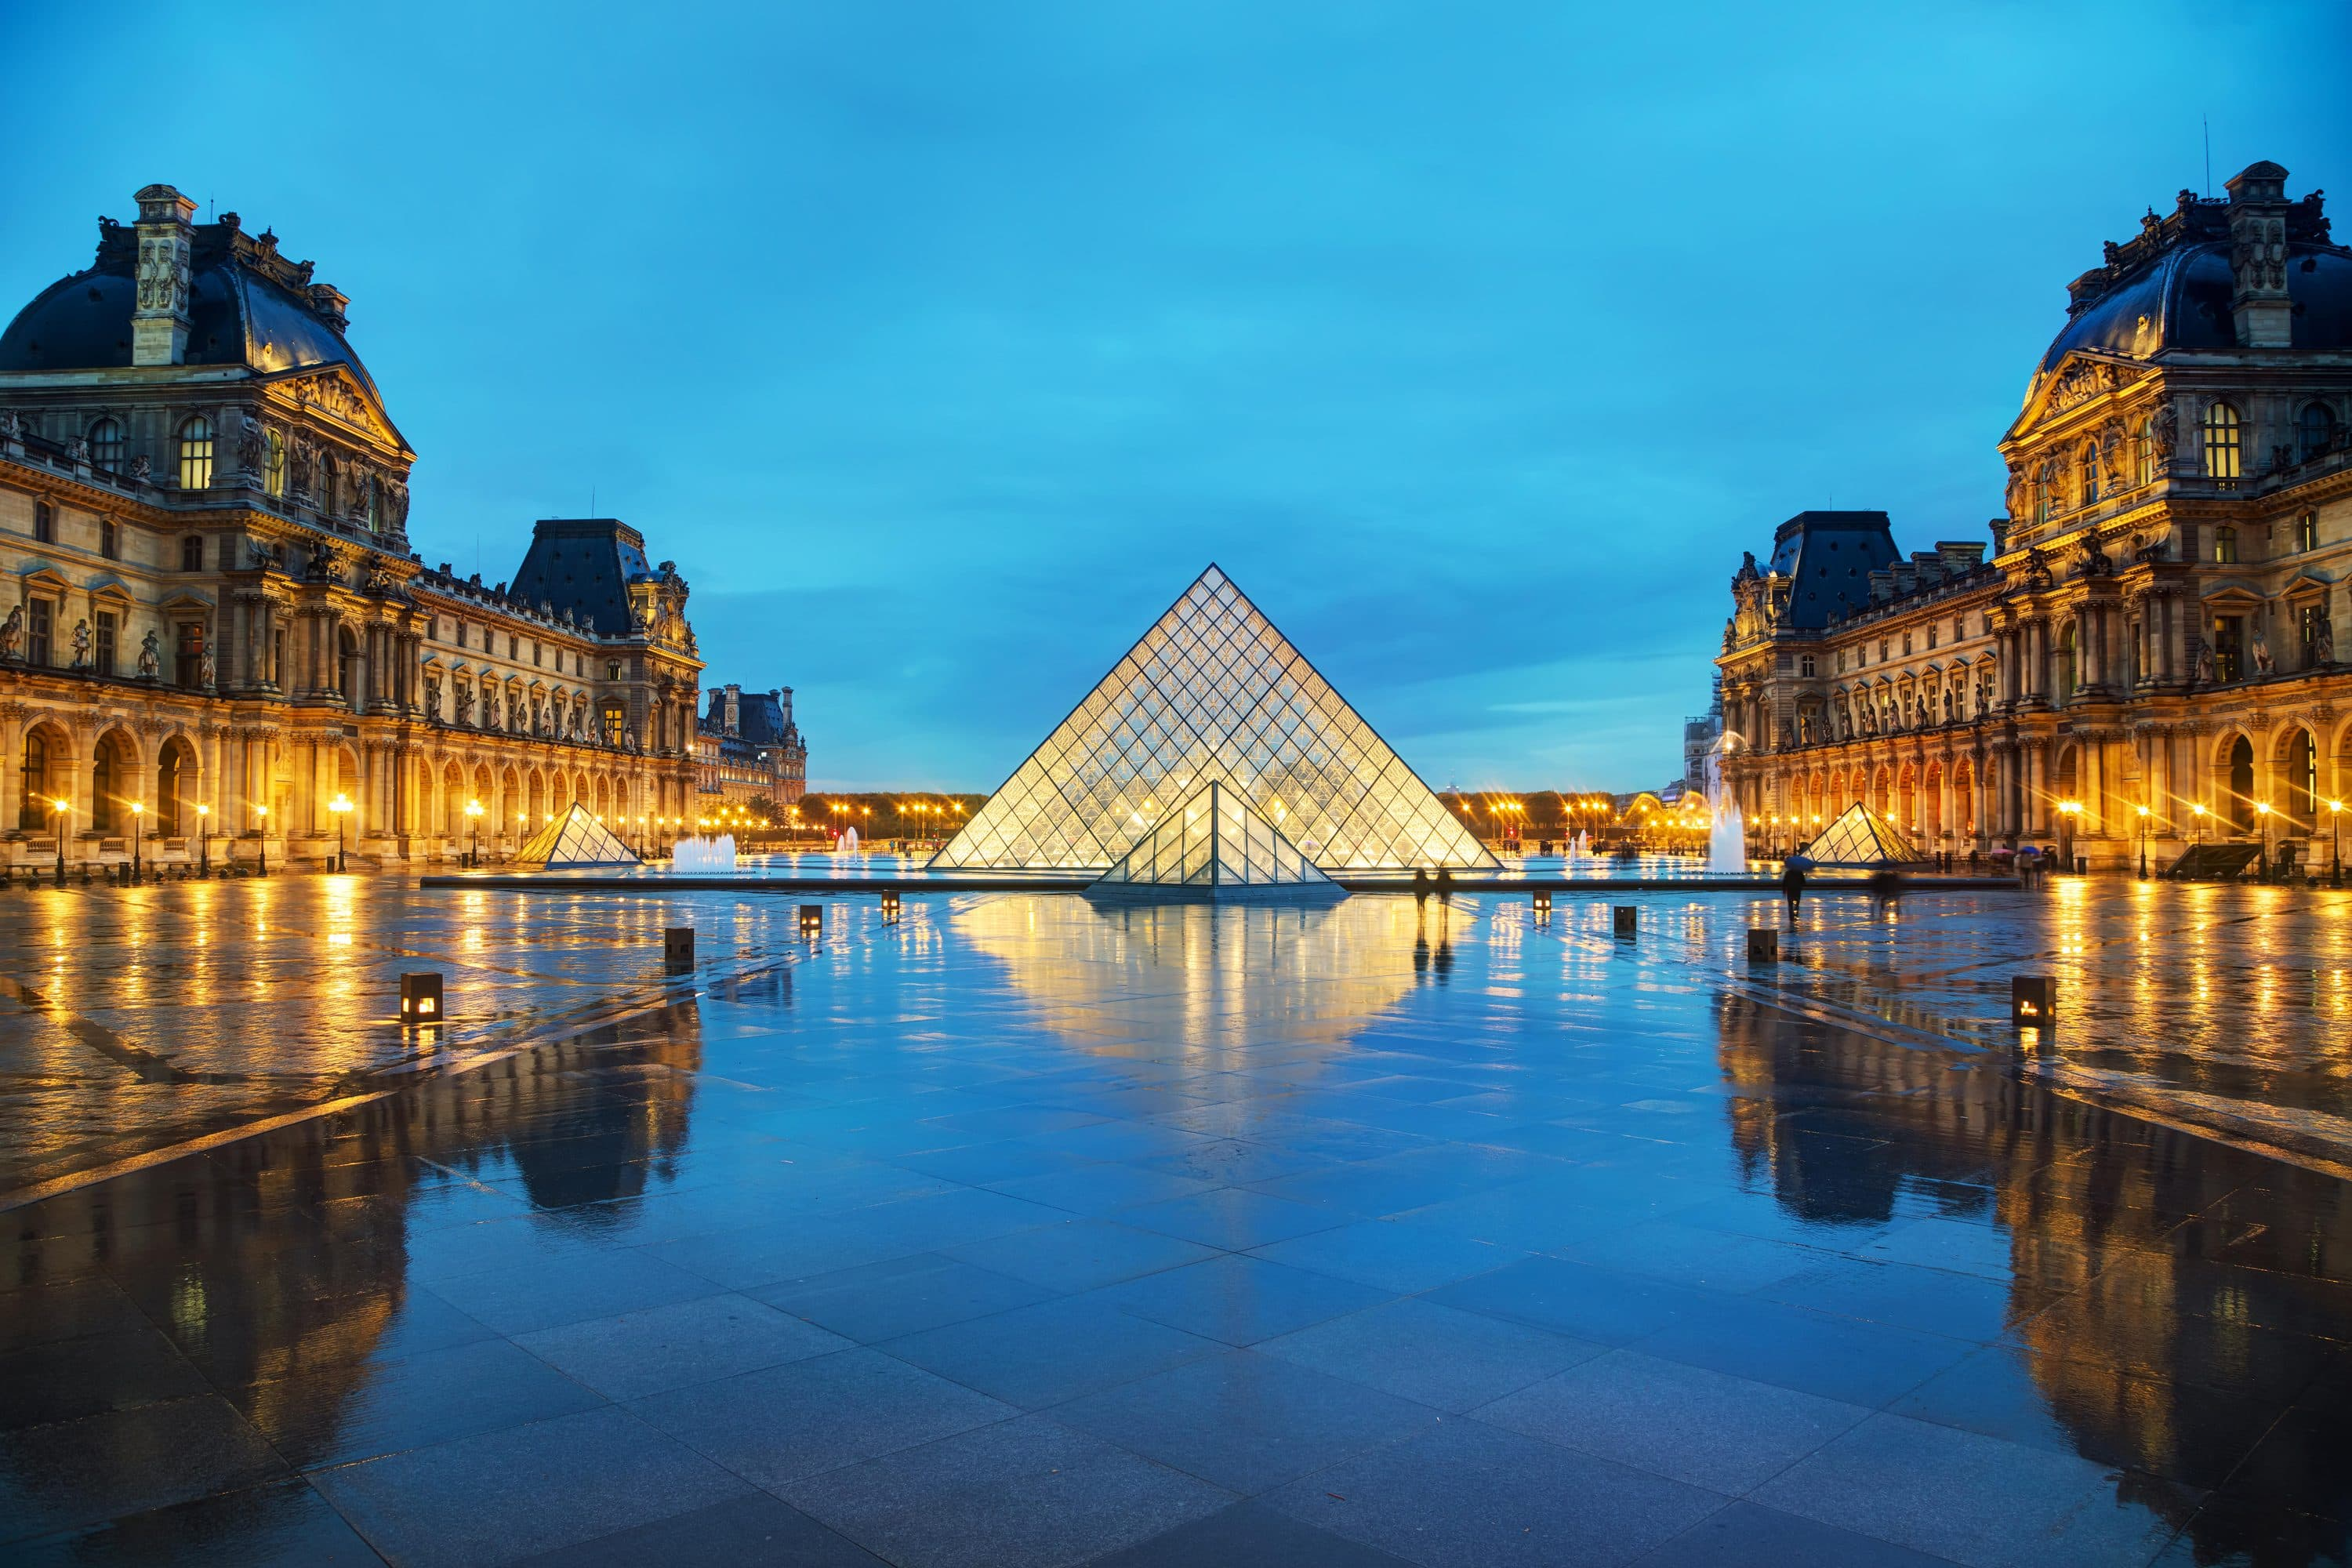 The Louvre Museum's famous Pyramid